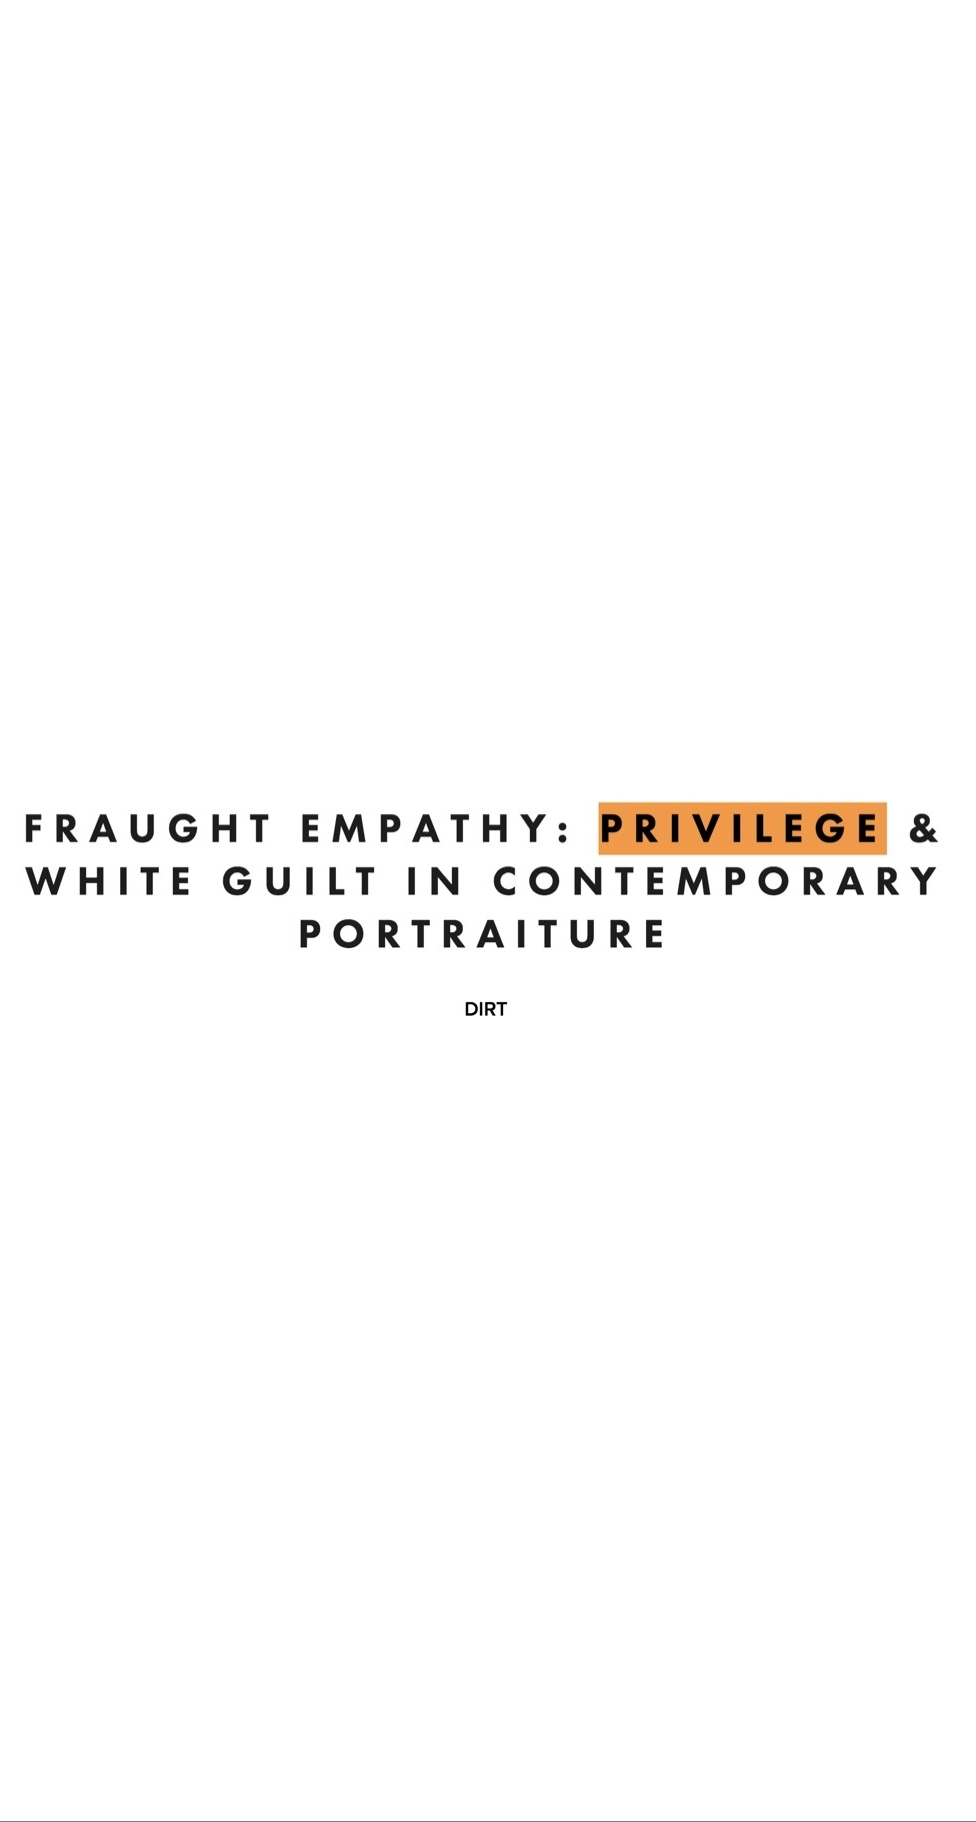 Fraught Empathy: Privilege & White Guilt in Contemporary Portraiture